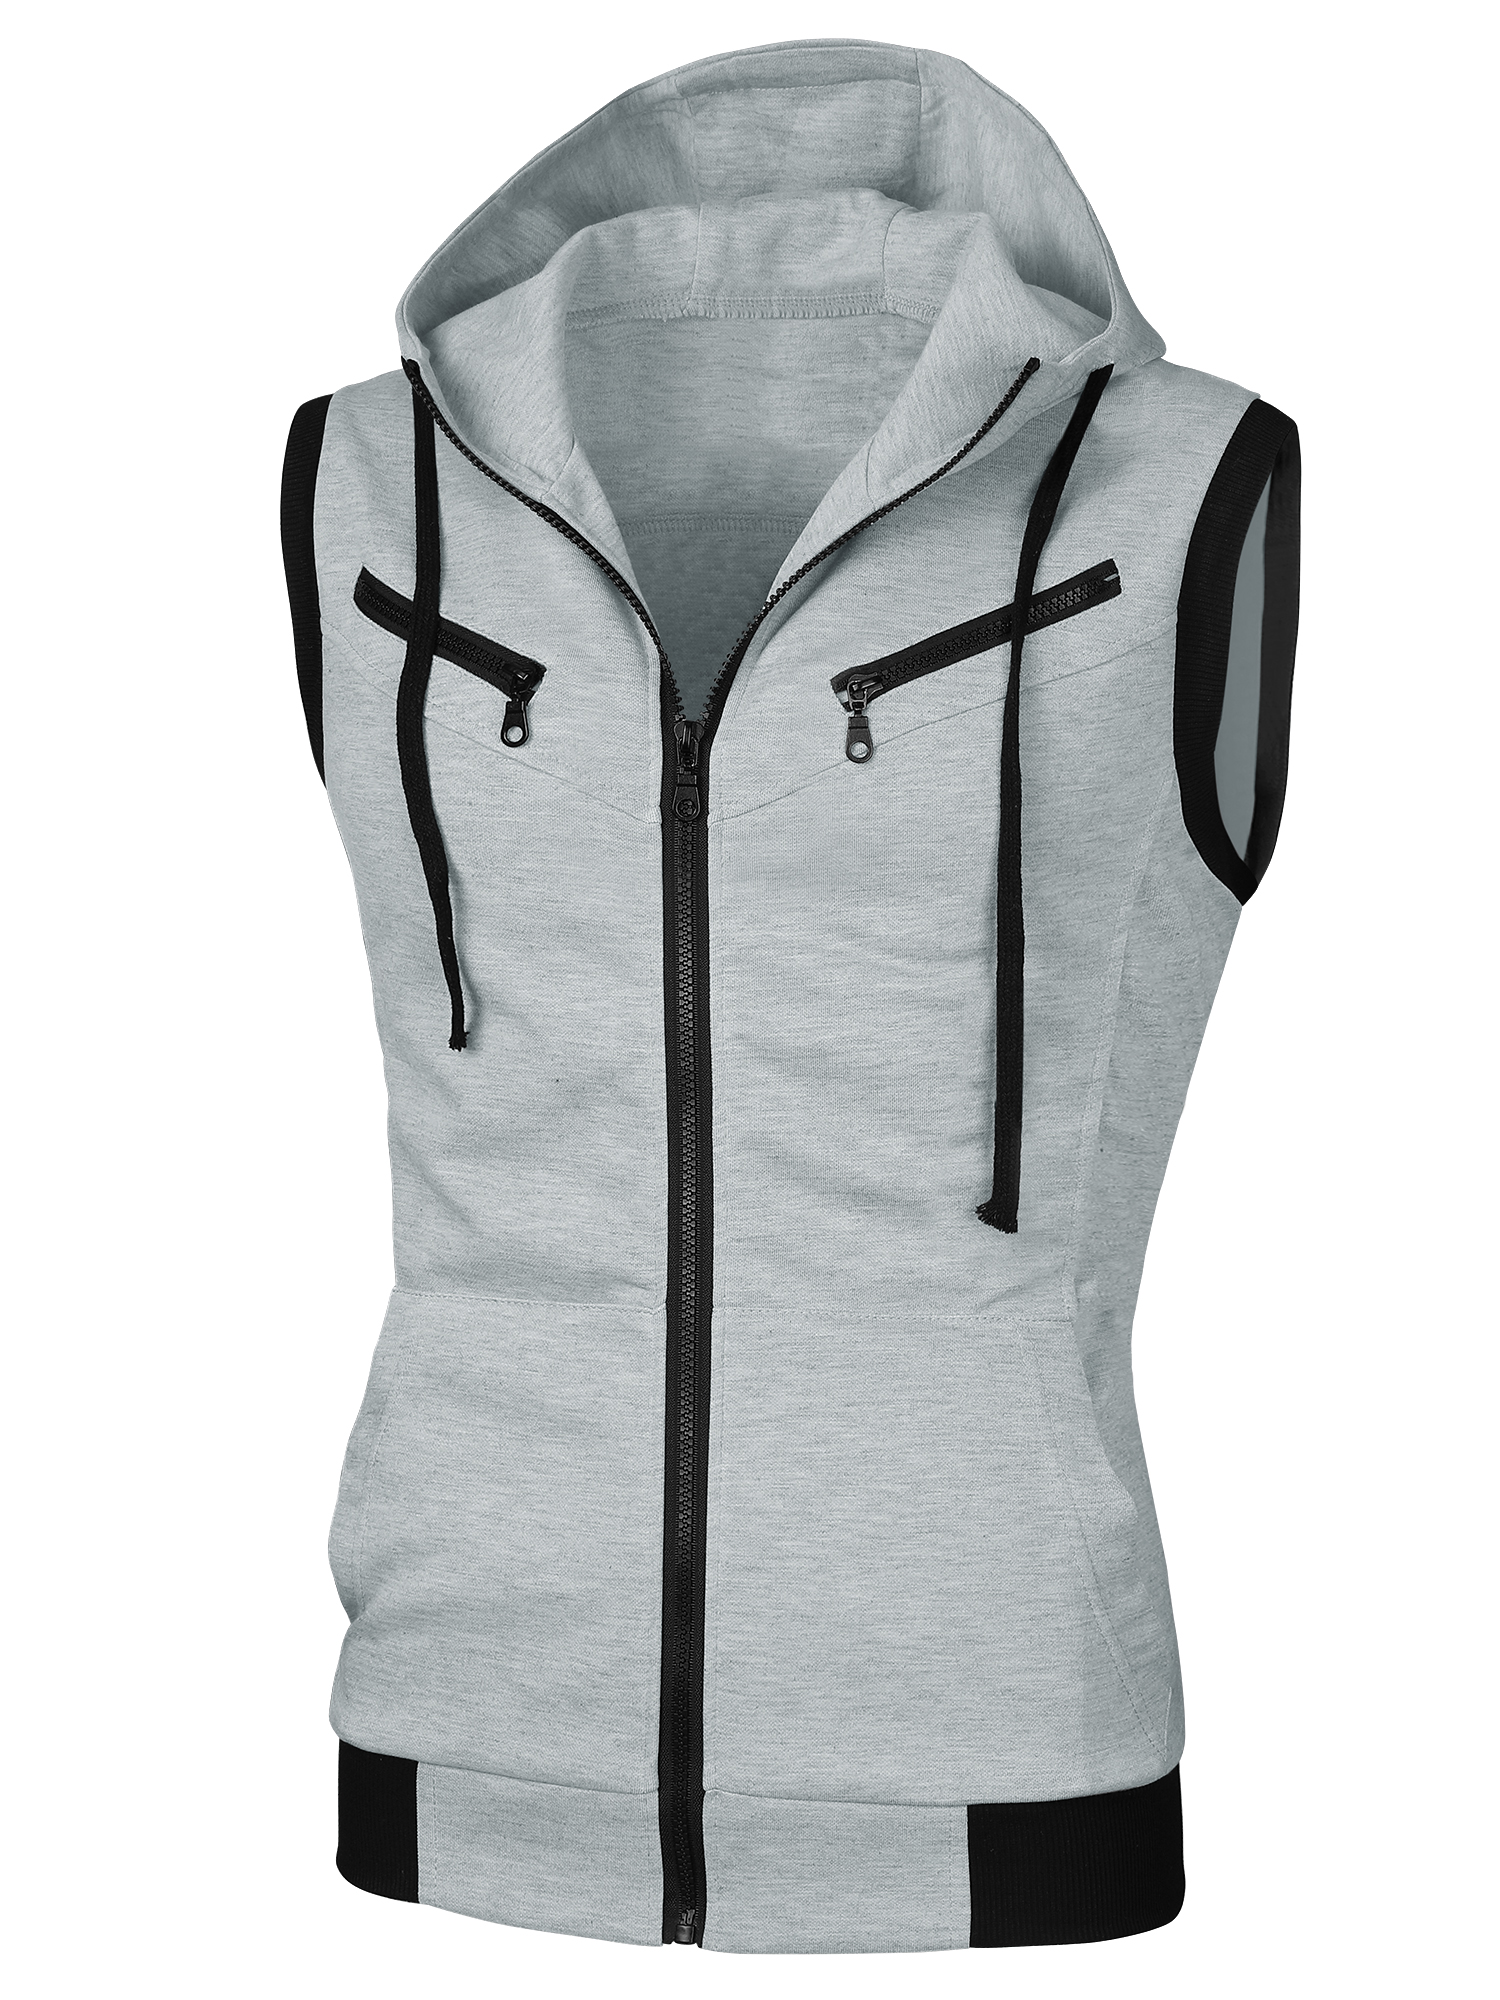 Men Ribbed Detail Drawcord Design Fashion Hoodie Vest Heather Gray S